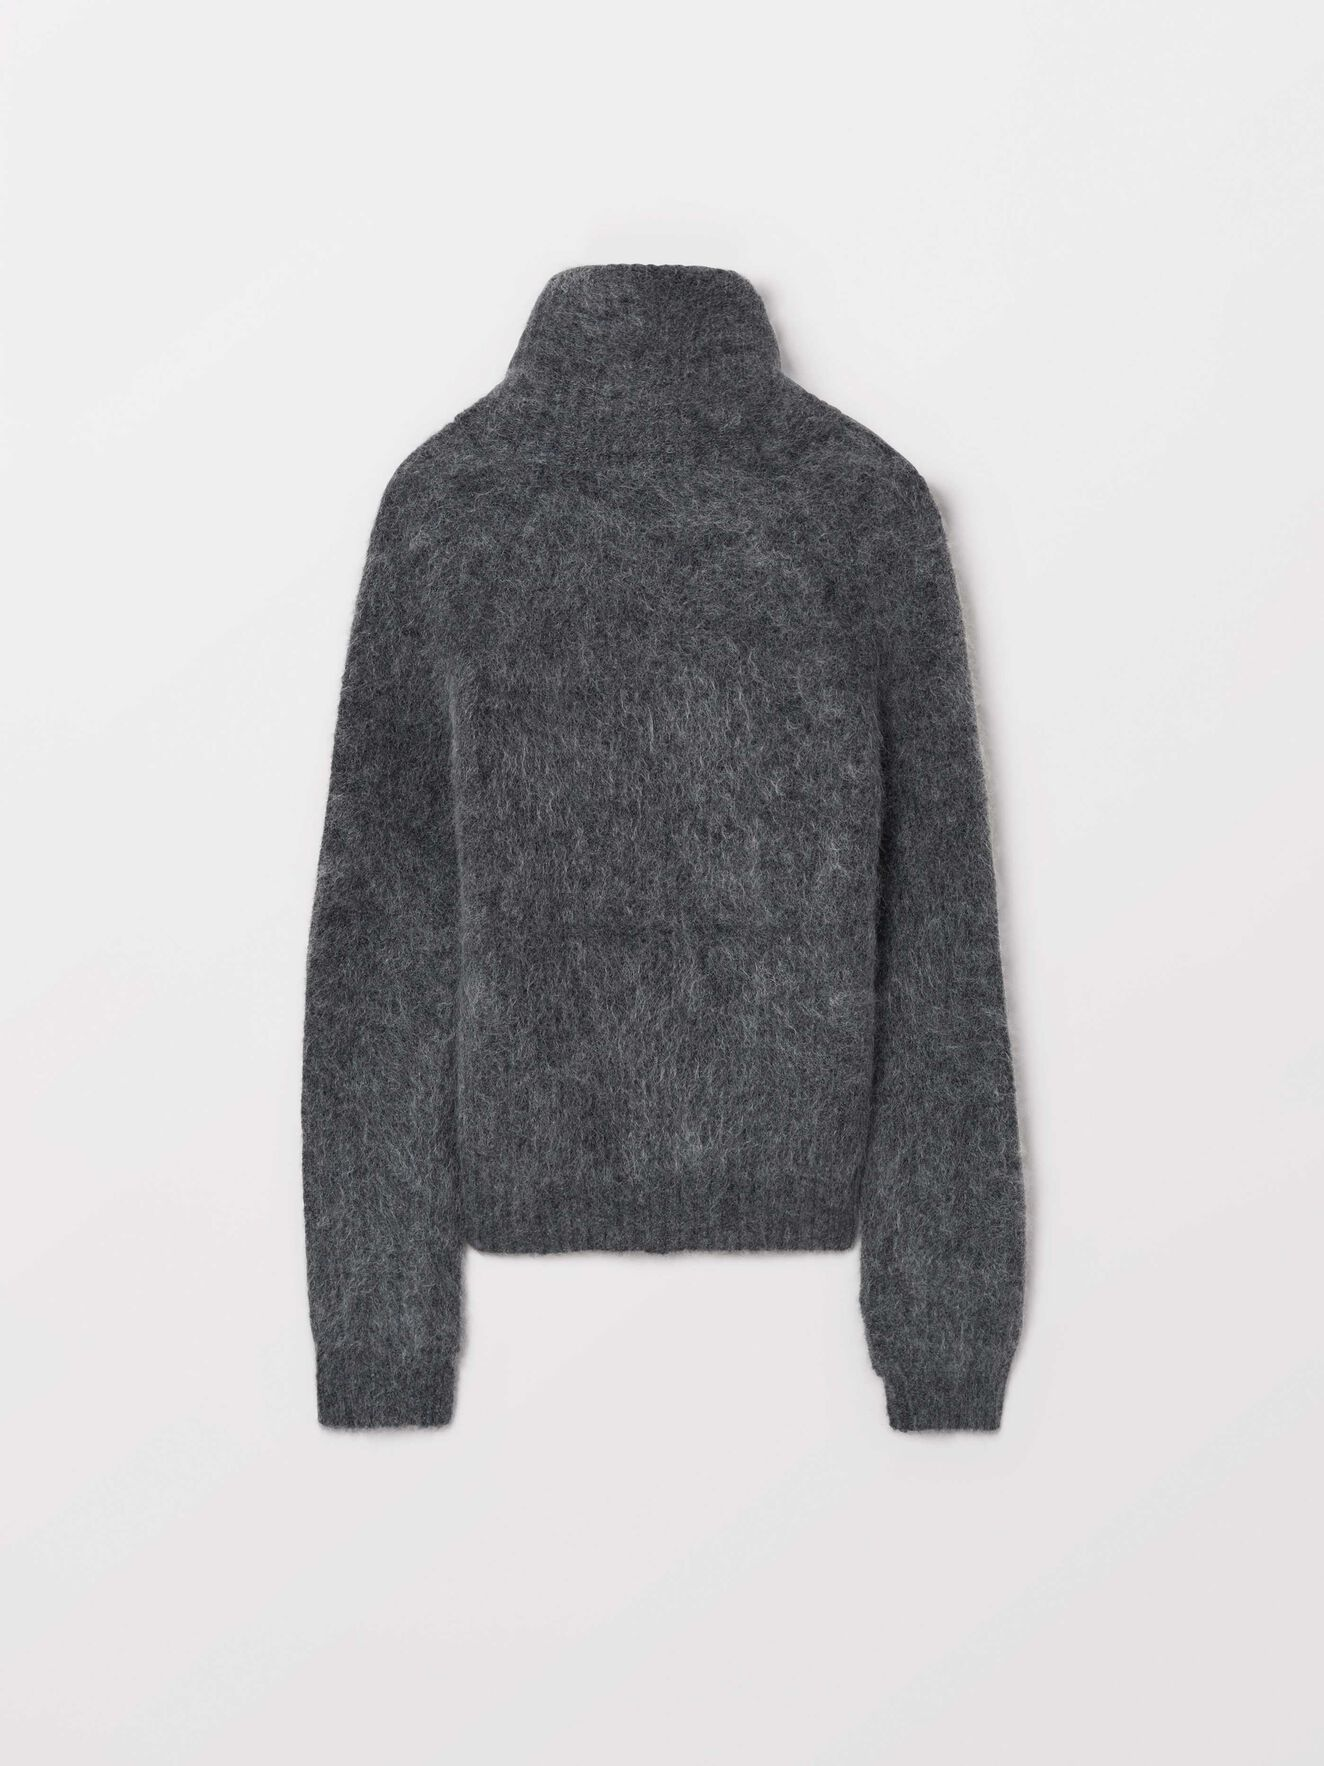 Cabella Cardigan in Iron Grey from Tiger of Sweden